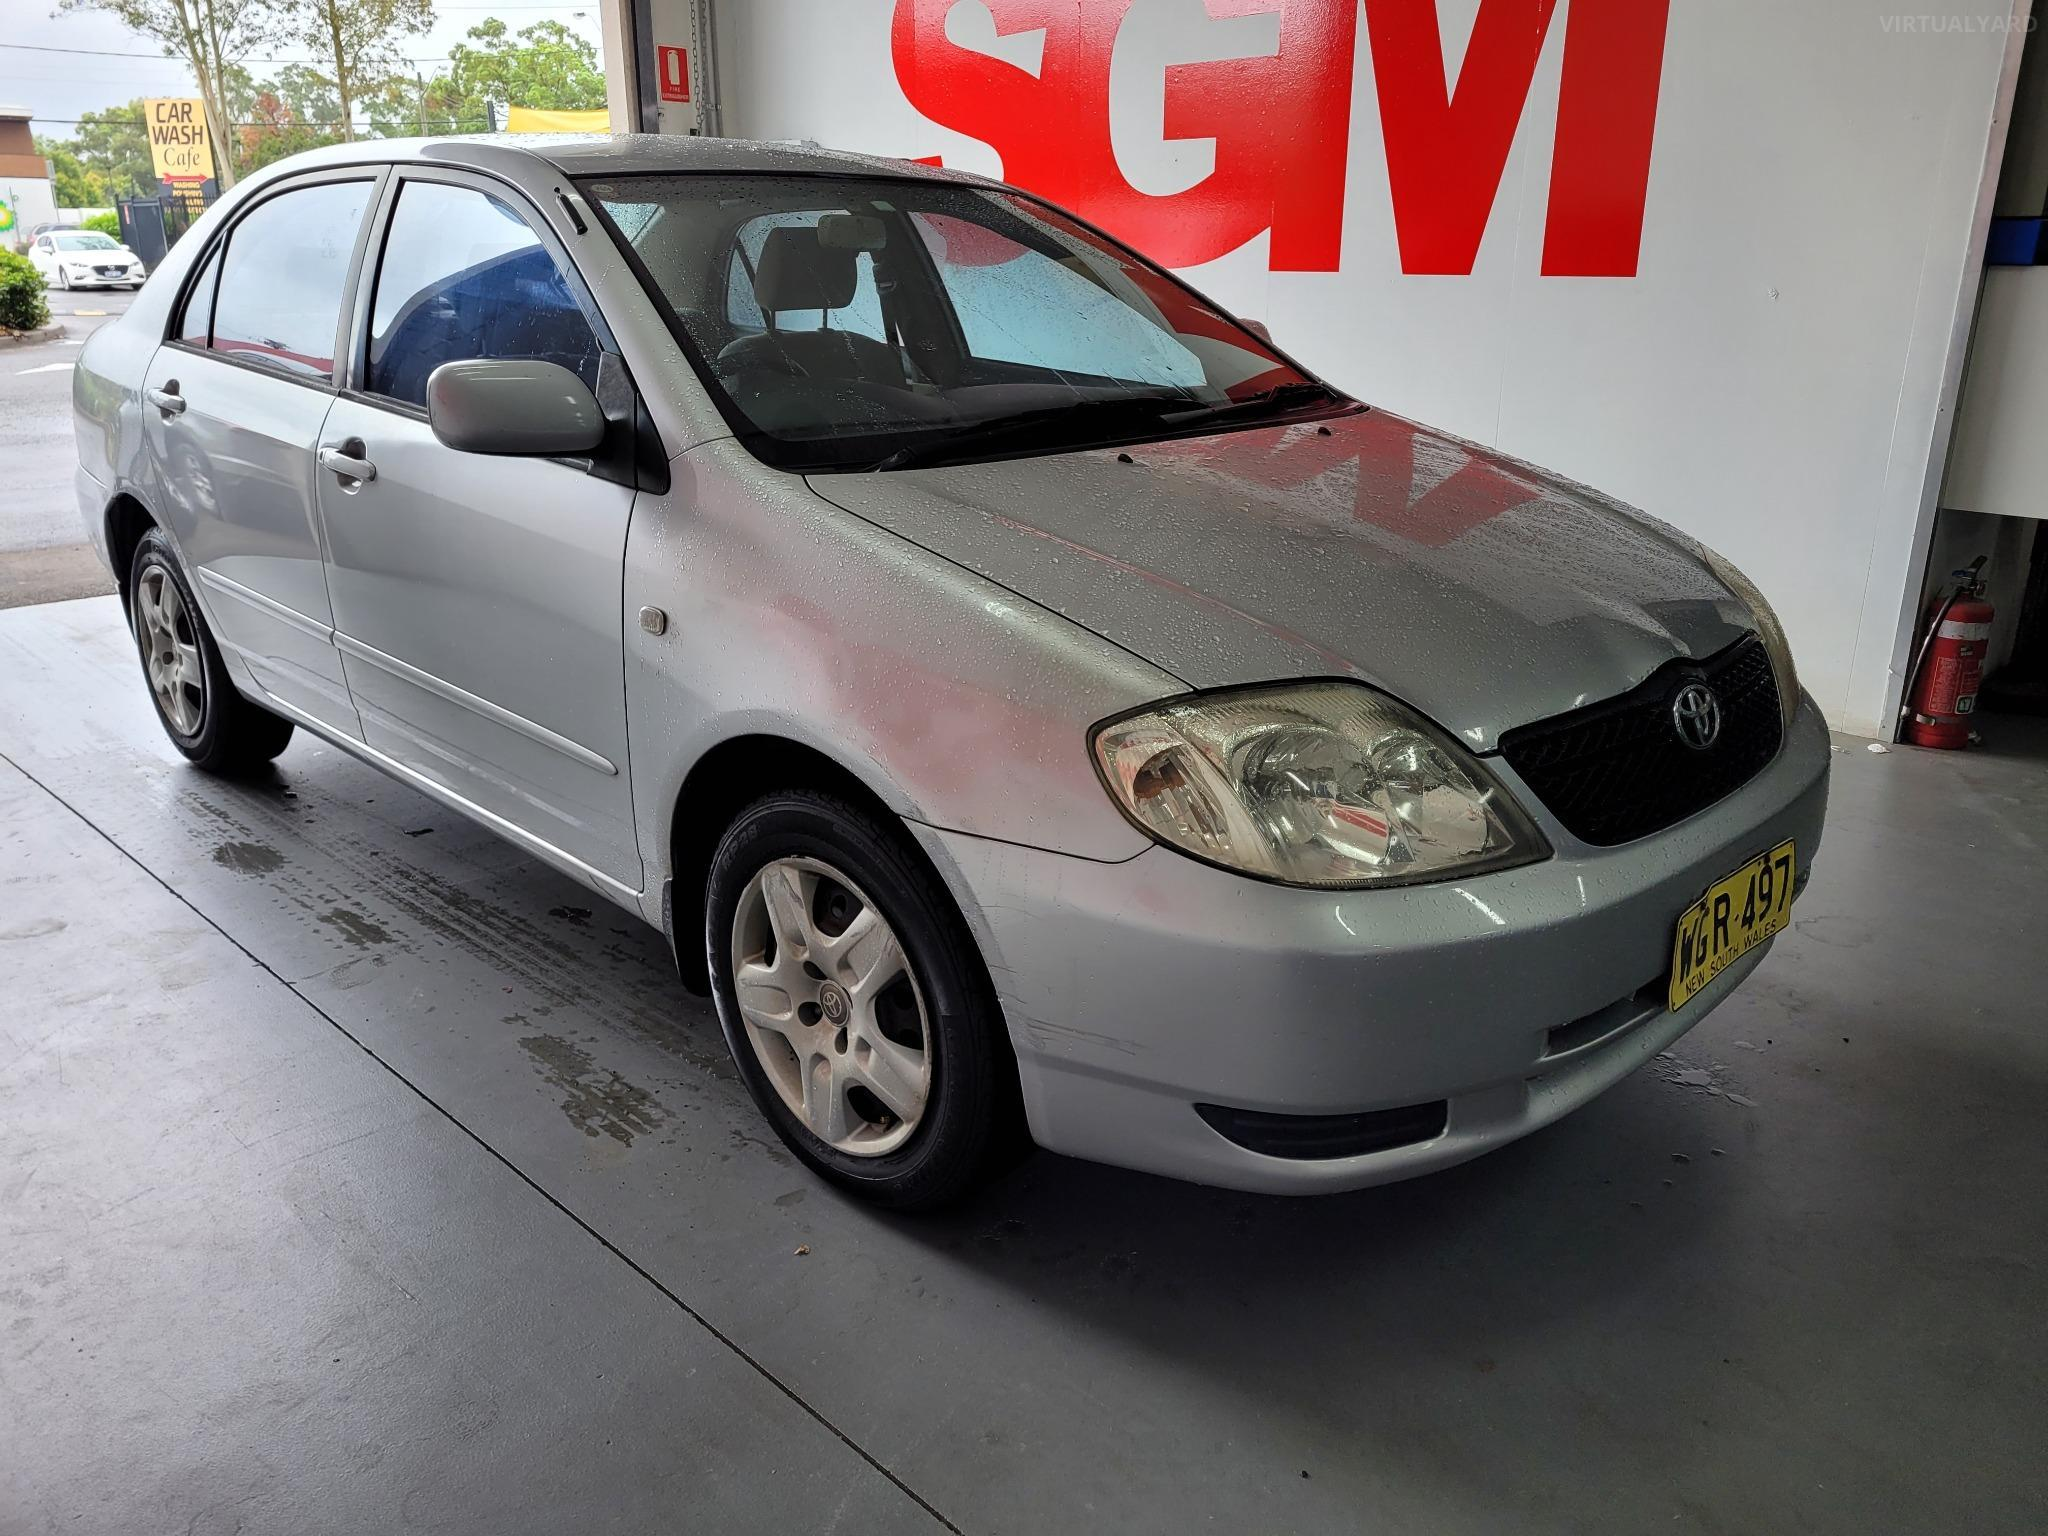 2001 Toyota Corolla ZZE122R 5Y Conquest Sedan 4dr Man 5sp 1.8i Picture 8